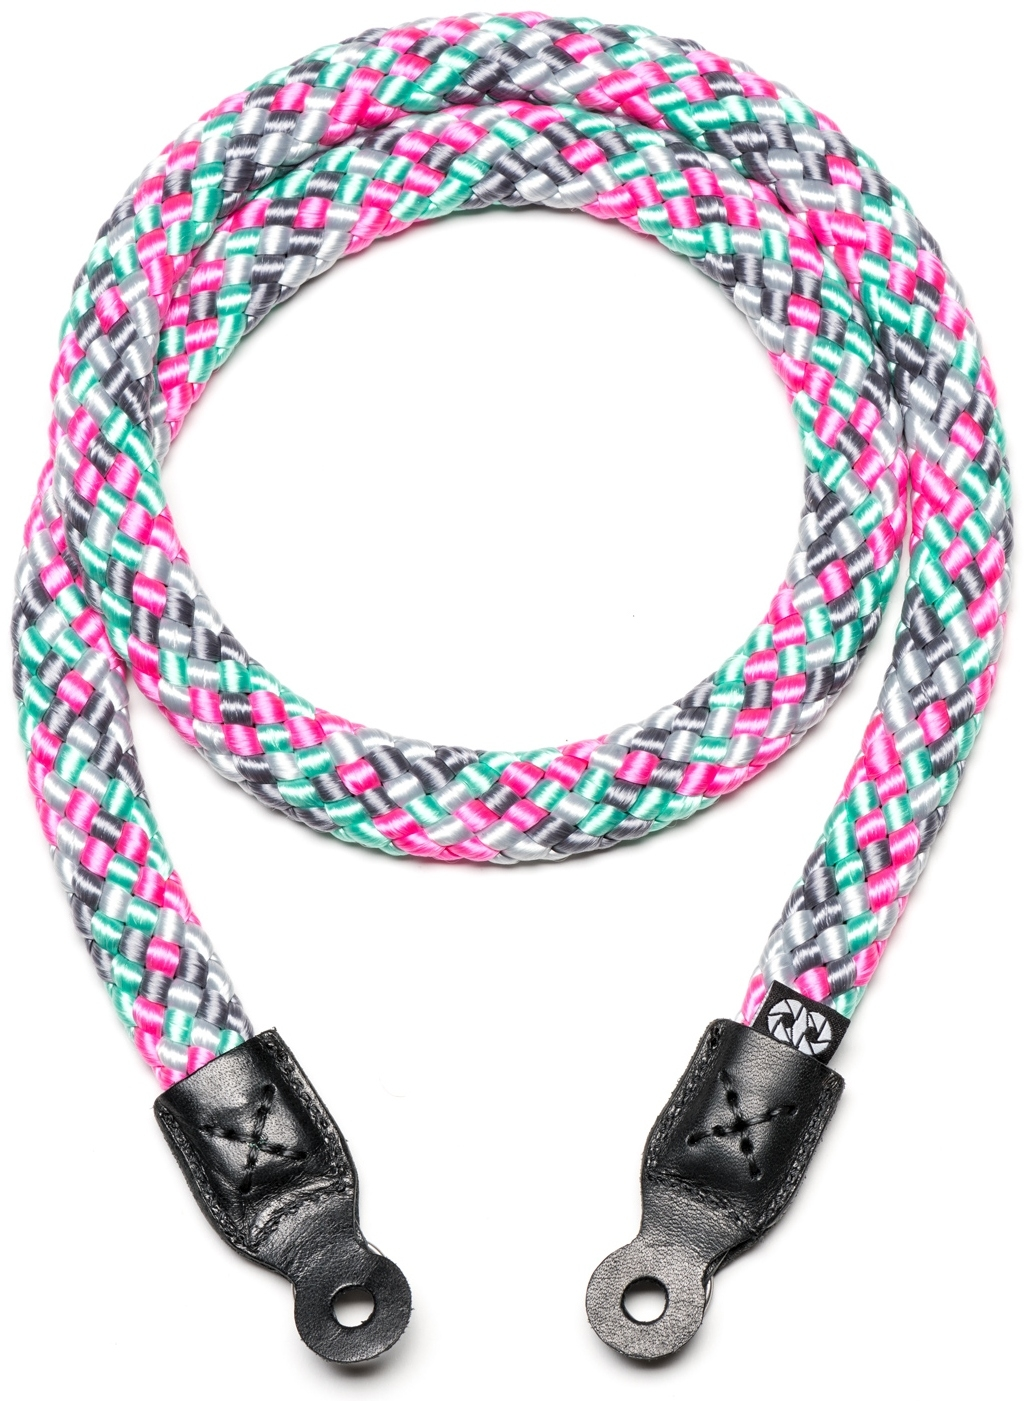 COOPH Camera Strap - Icemint/Pink 125cm